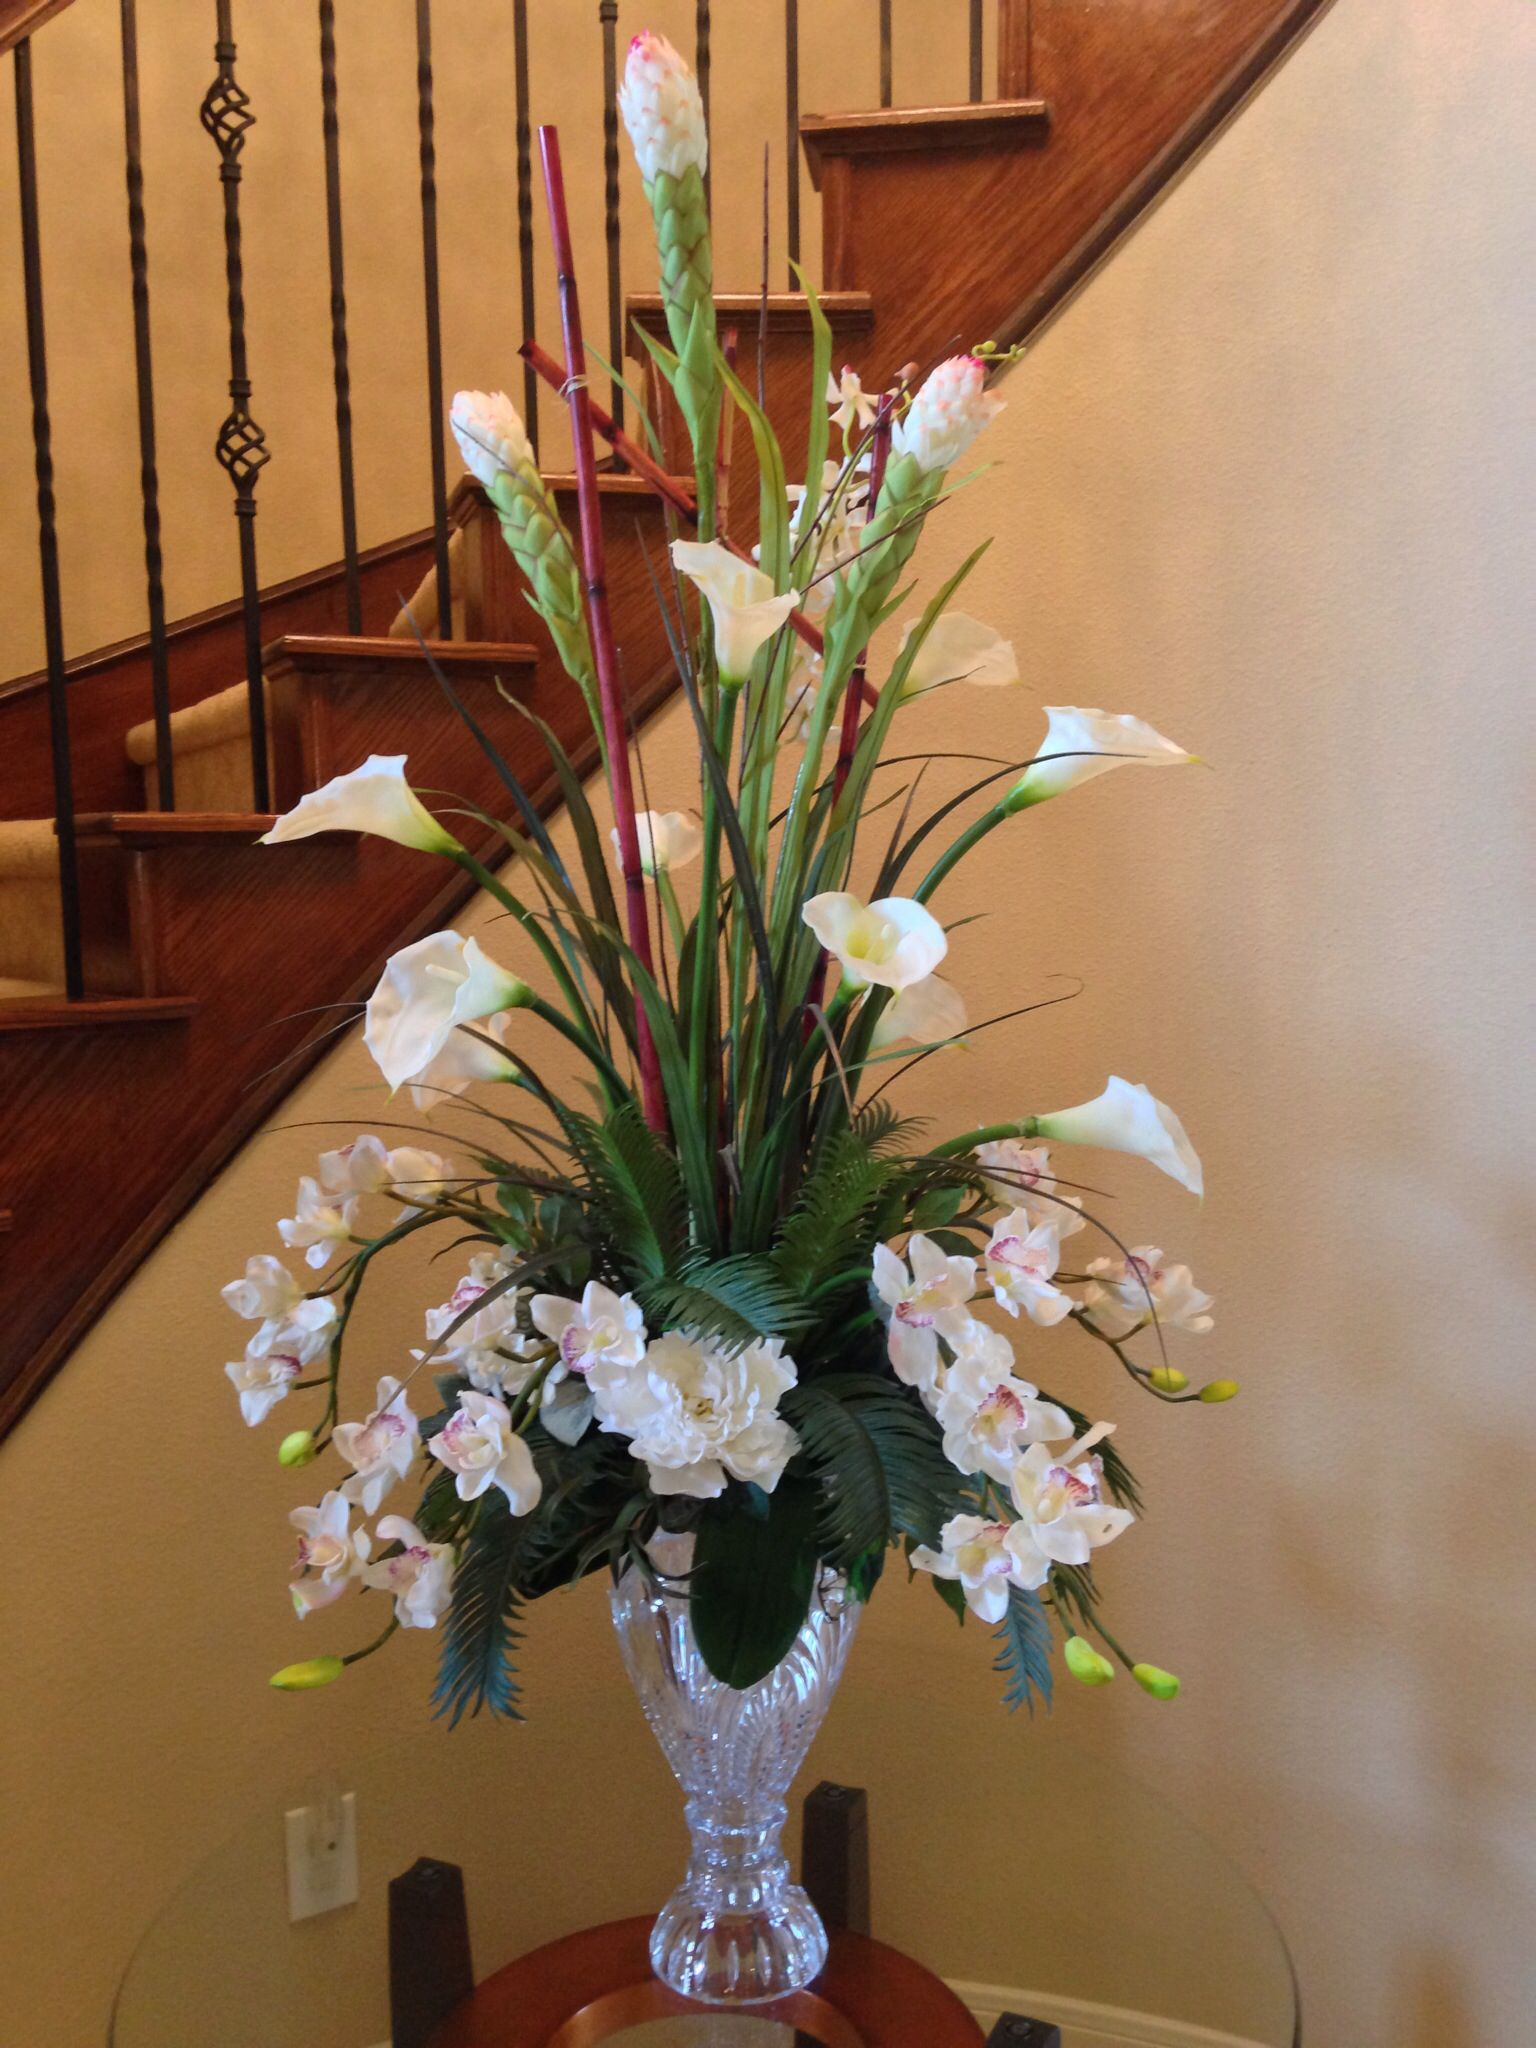 Attirant Calla Lily With Orchid Flower Arrangement For Perfect Foyer Or Staircase.  By Arcadia Floral And